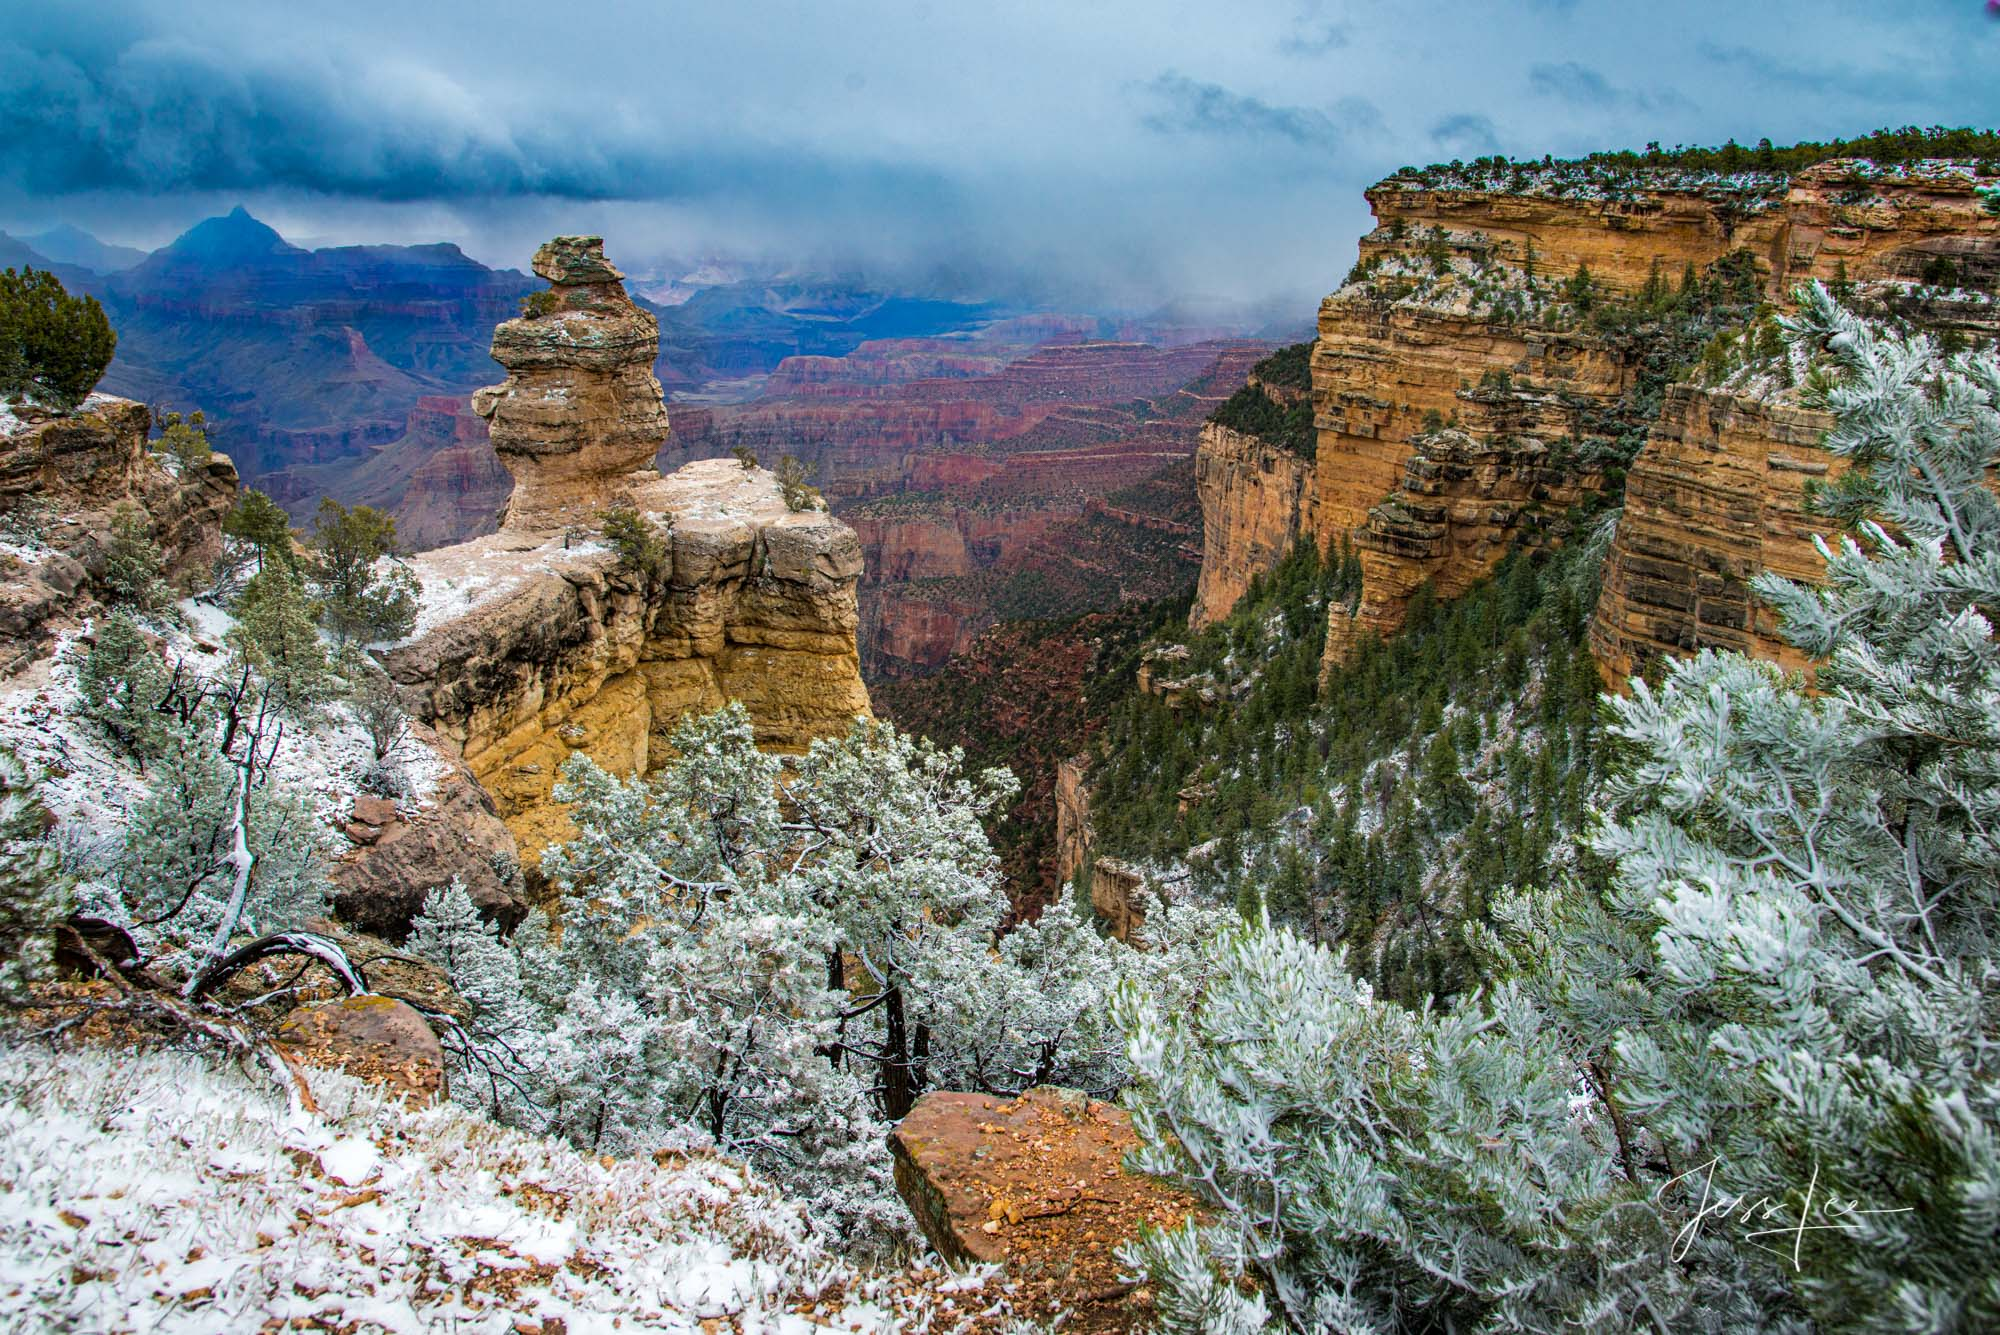 Arizona's Grand Canyon covered in a thin layer of snow.